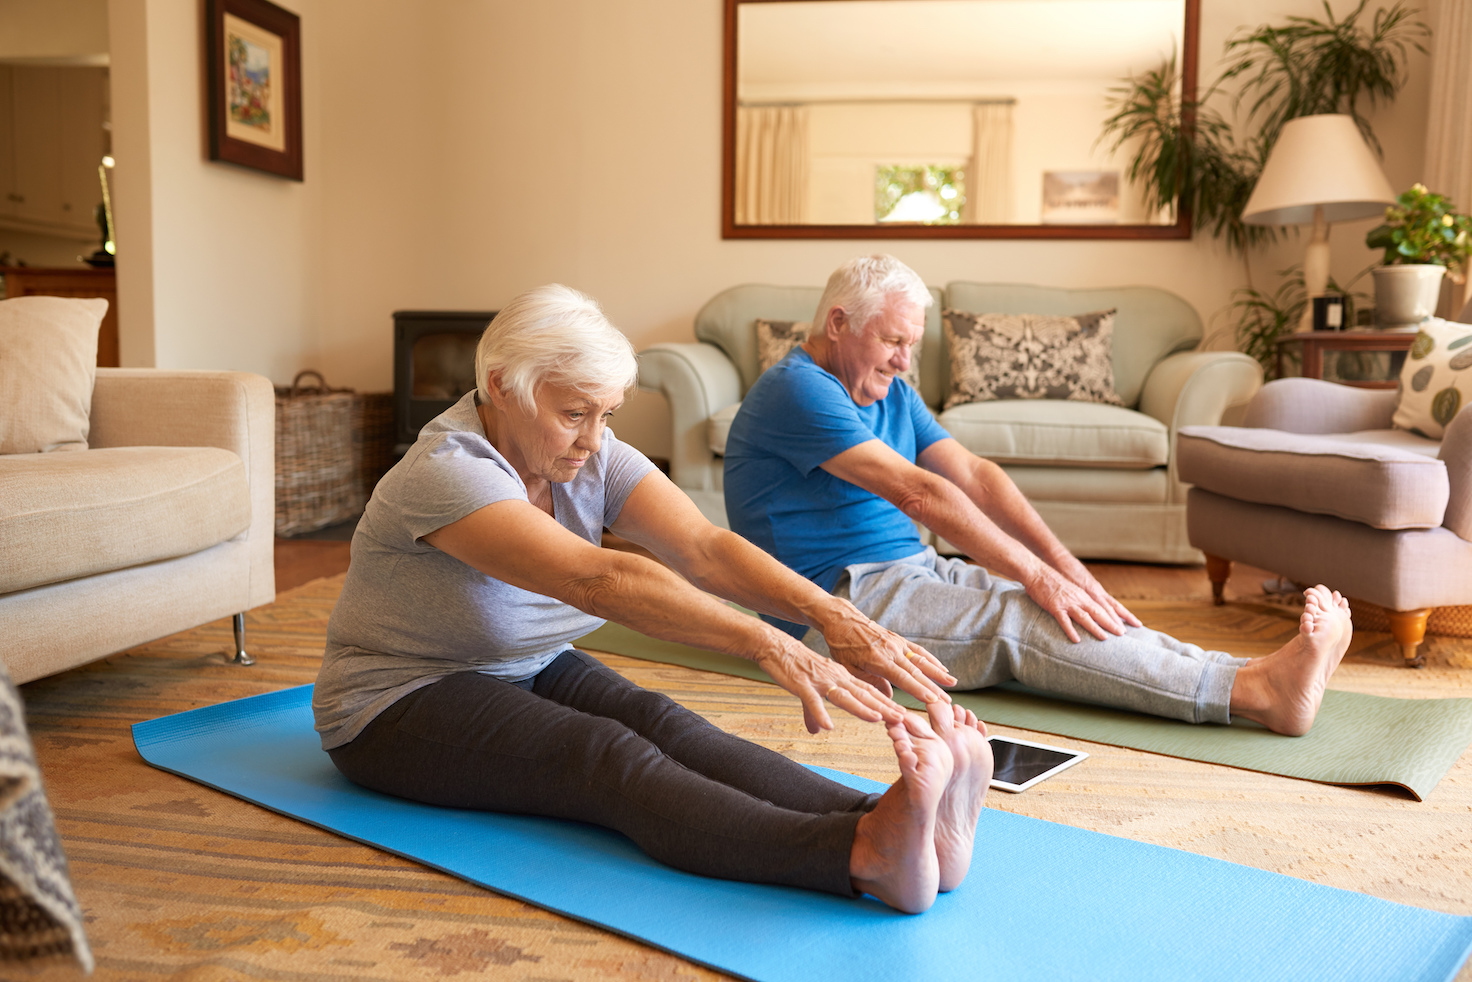 The 10-Minute Stretching Routine Seniors Should Do Daily